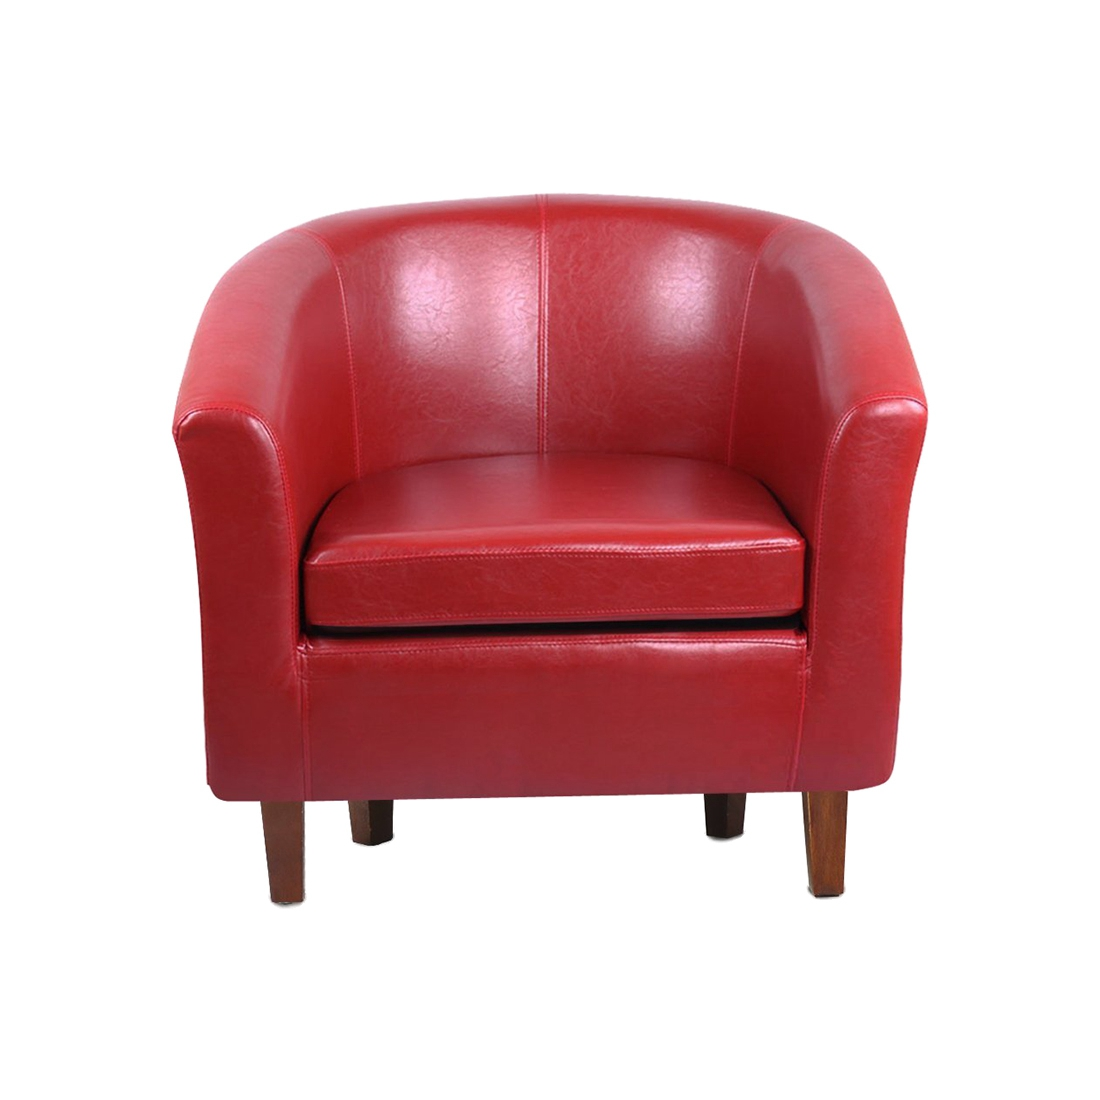 Red Living Room Chairs Compare Prices On Red Leather Living Room Furniture Online